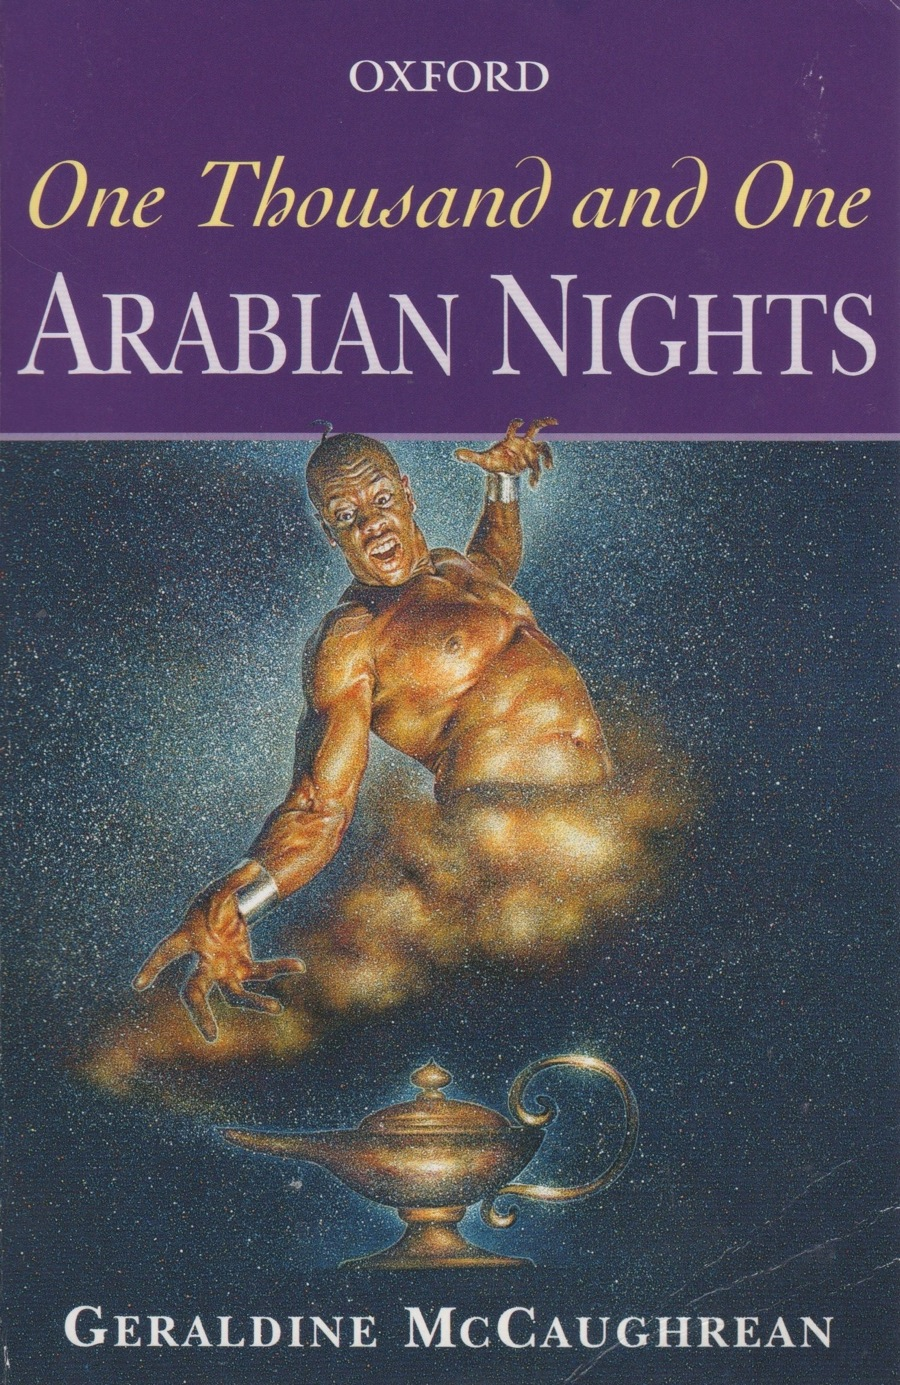 1001 Arabian Nights copy.jpg